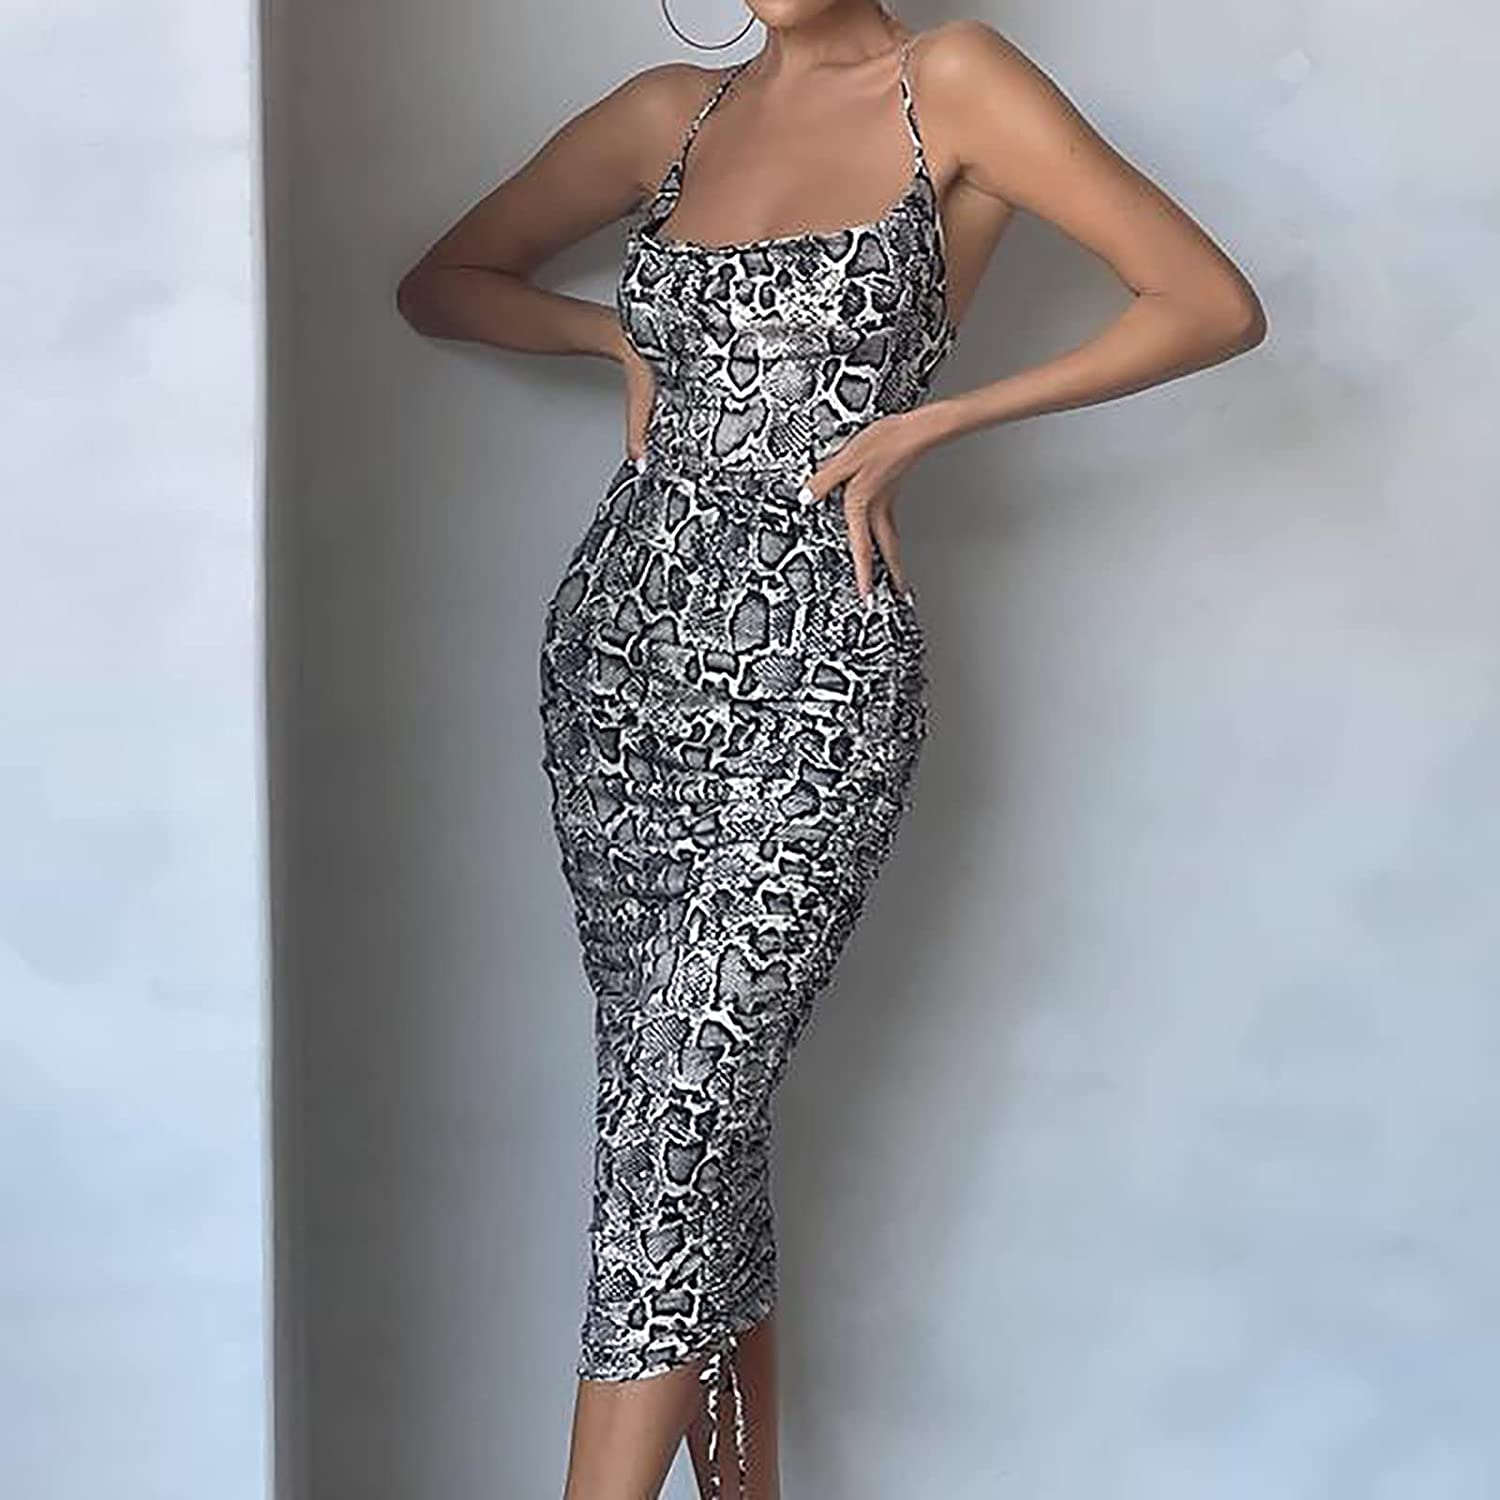 5665 Women's Summer Fashion Sexy Snake Print Asymmetrical Backless Camisole Pleated Dress Sleeveless Tight-Fitting Dress